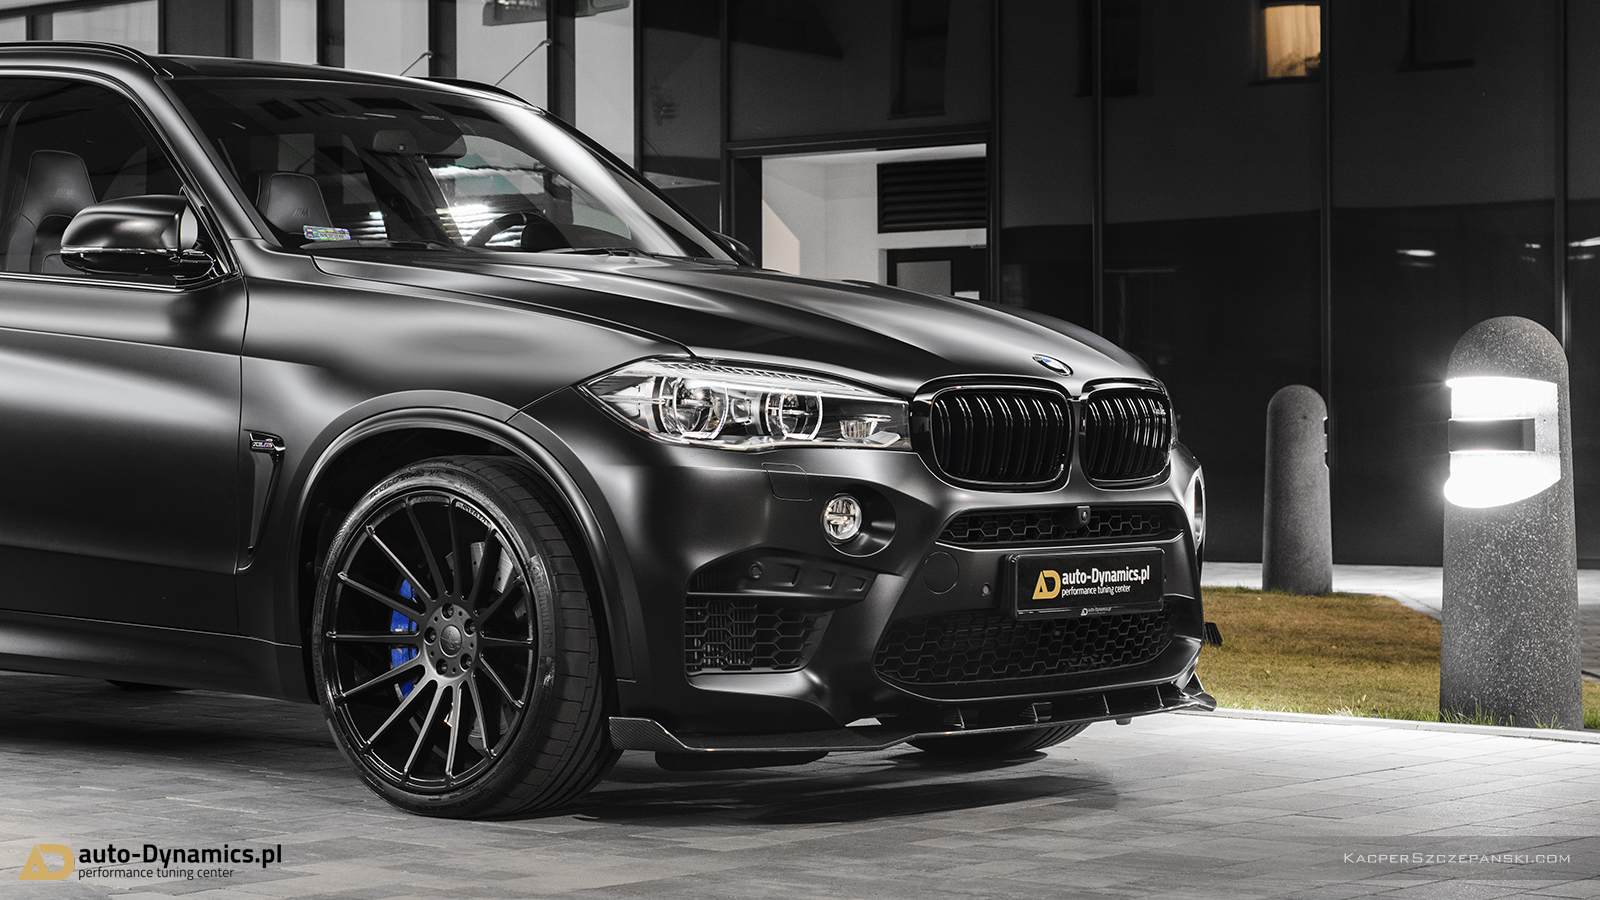 2018 the bmw x5 m avalancheauto-dynamics | top speed